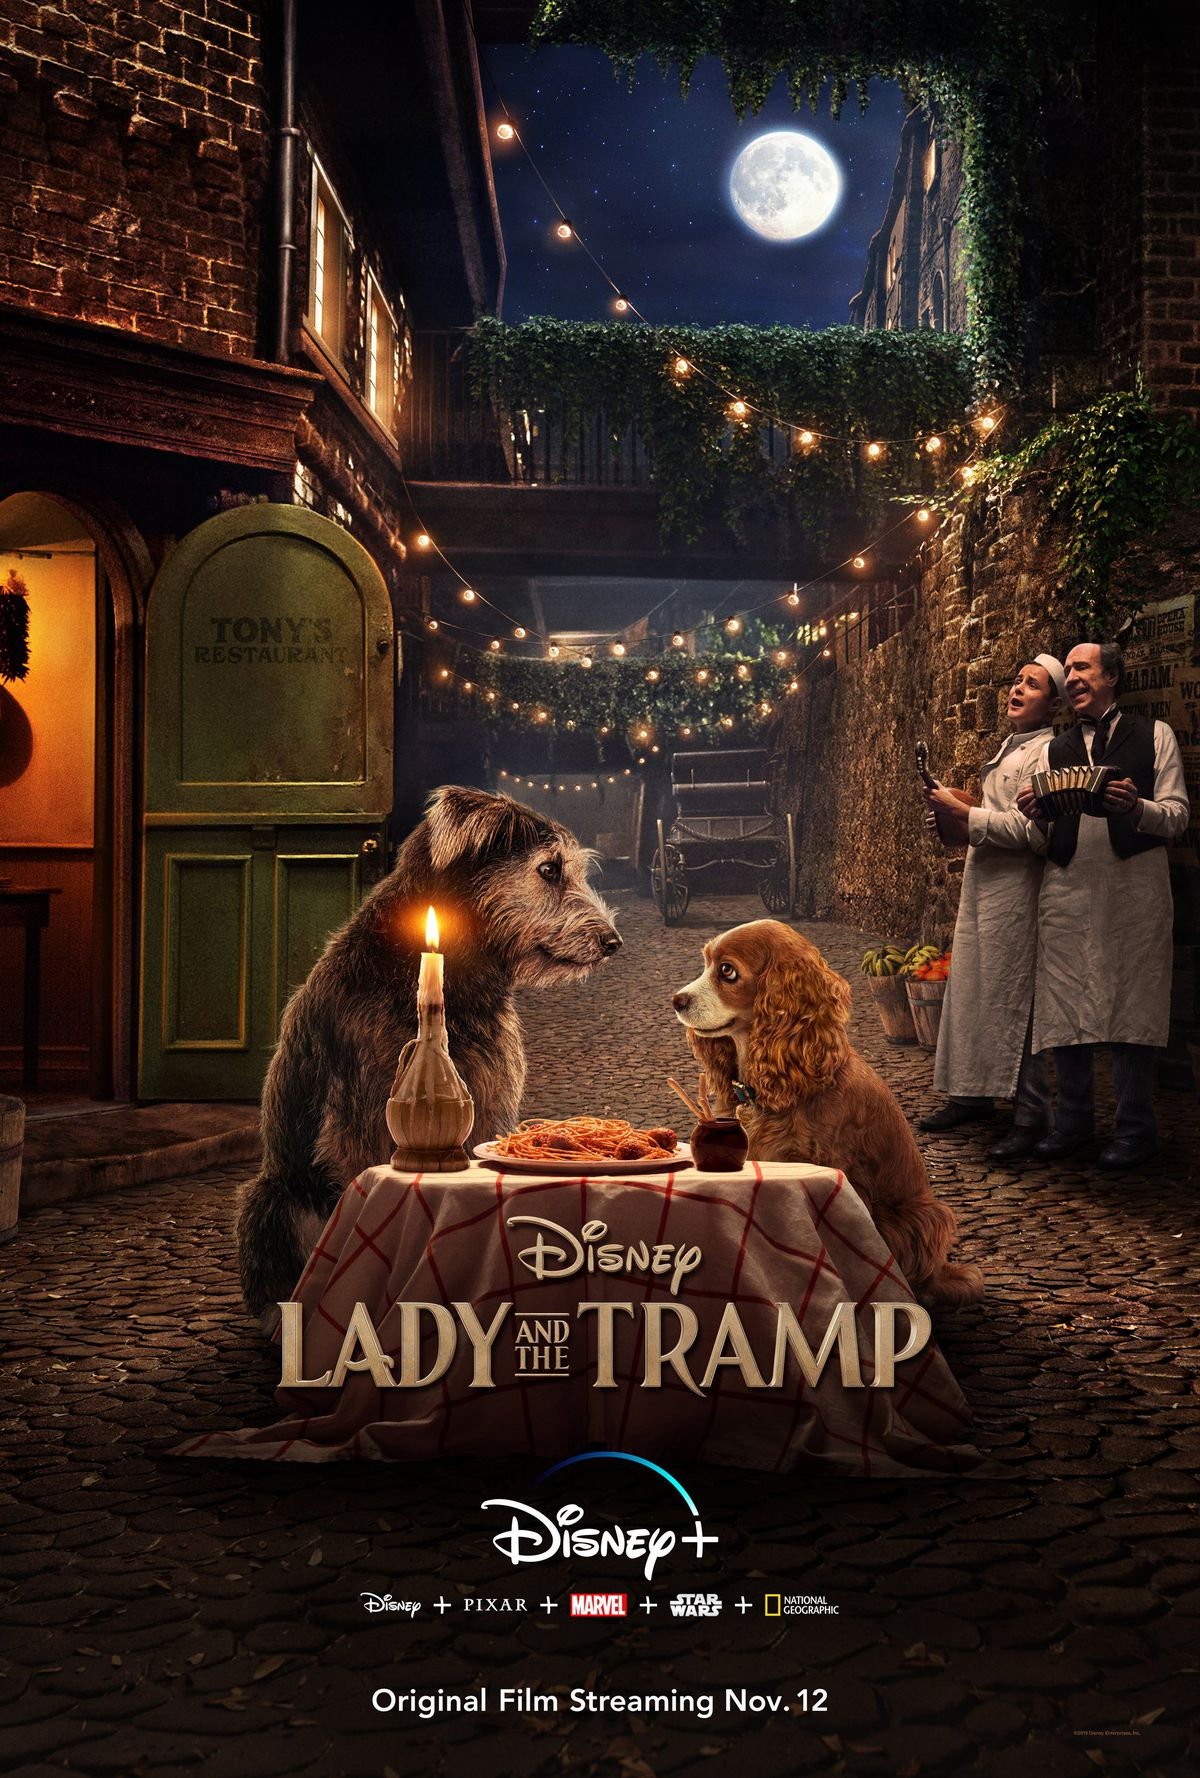 Lady and the Tramp live-action poster recreates dinner scene